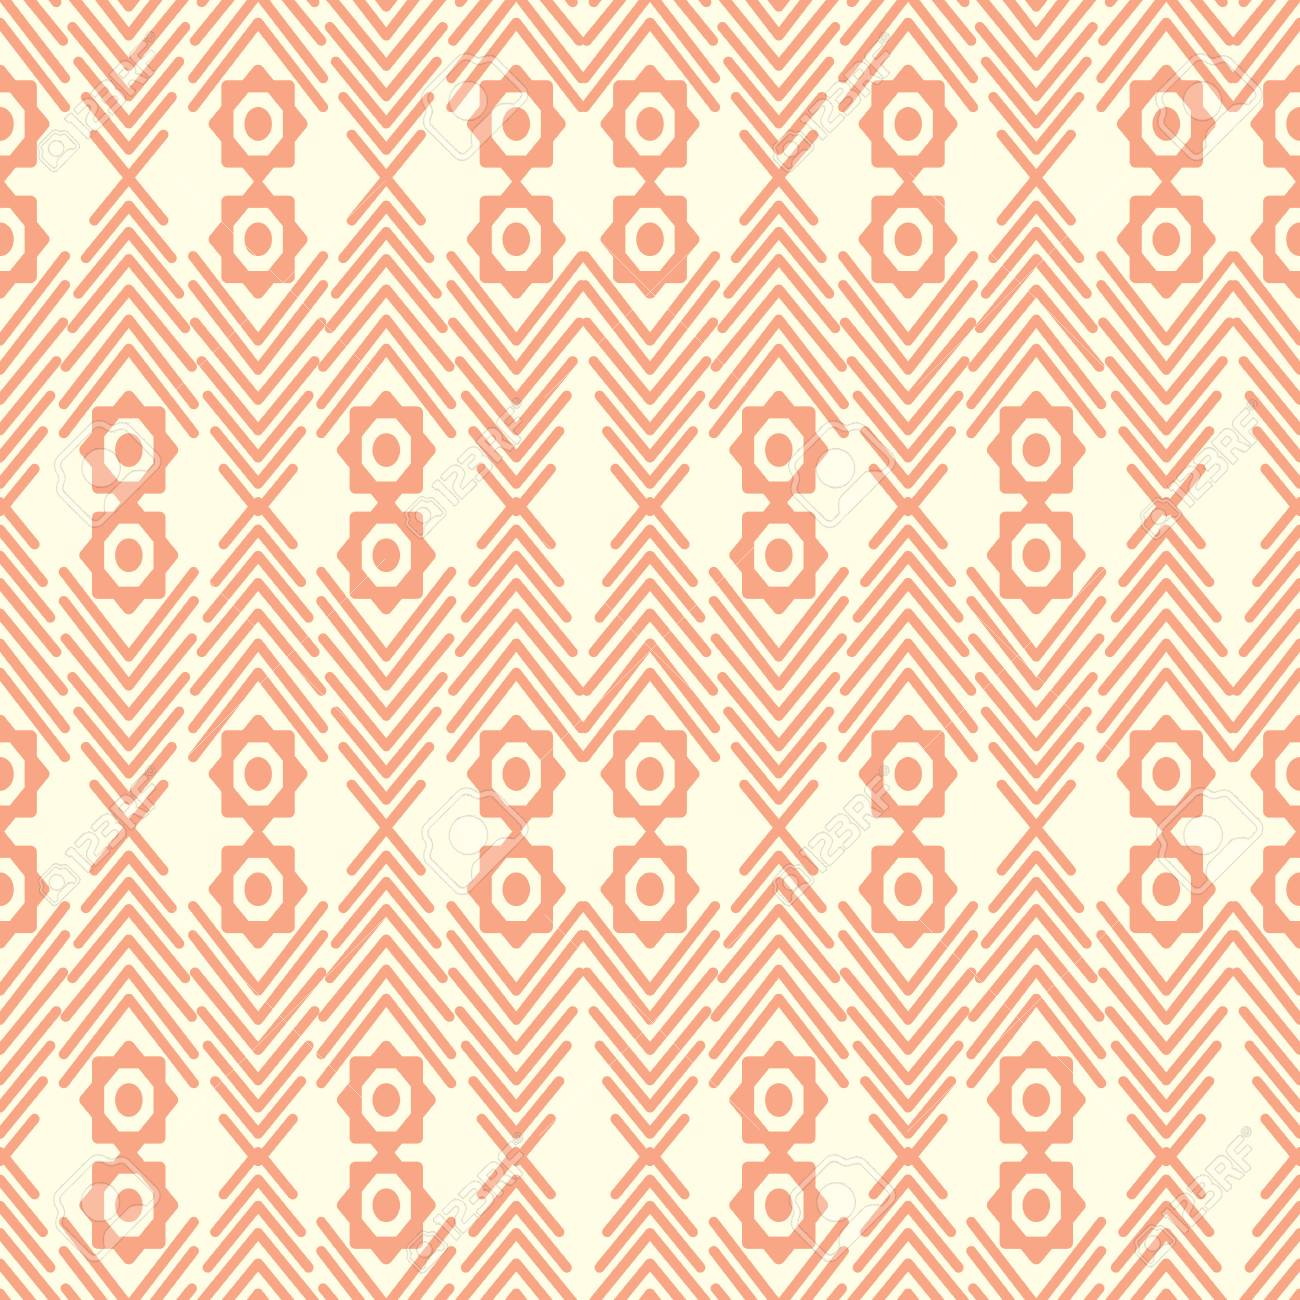 Abstract seamless ethnic pattern. Seamless pattern can be used for wallpaper, pattern fills, web page background, surface textures. - 31027507